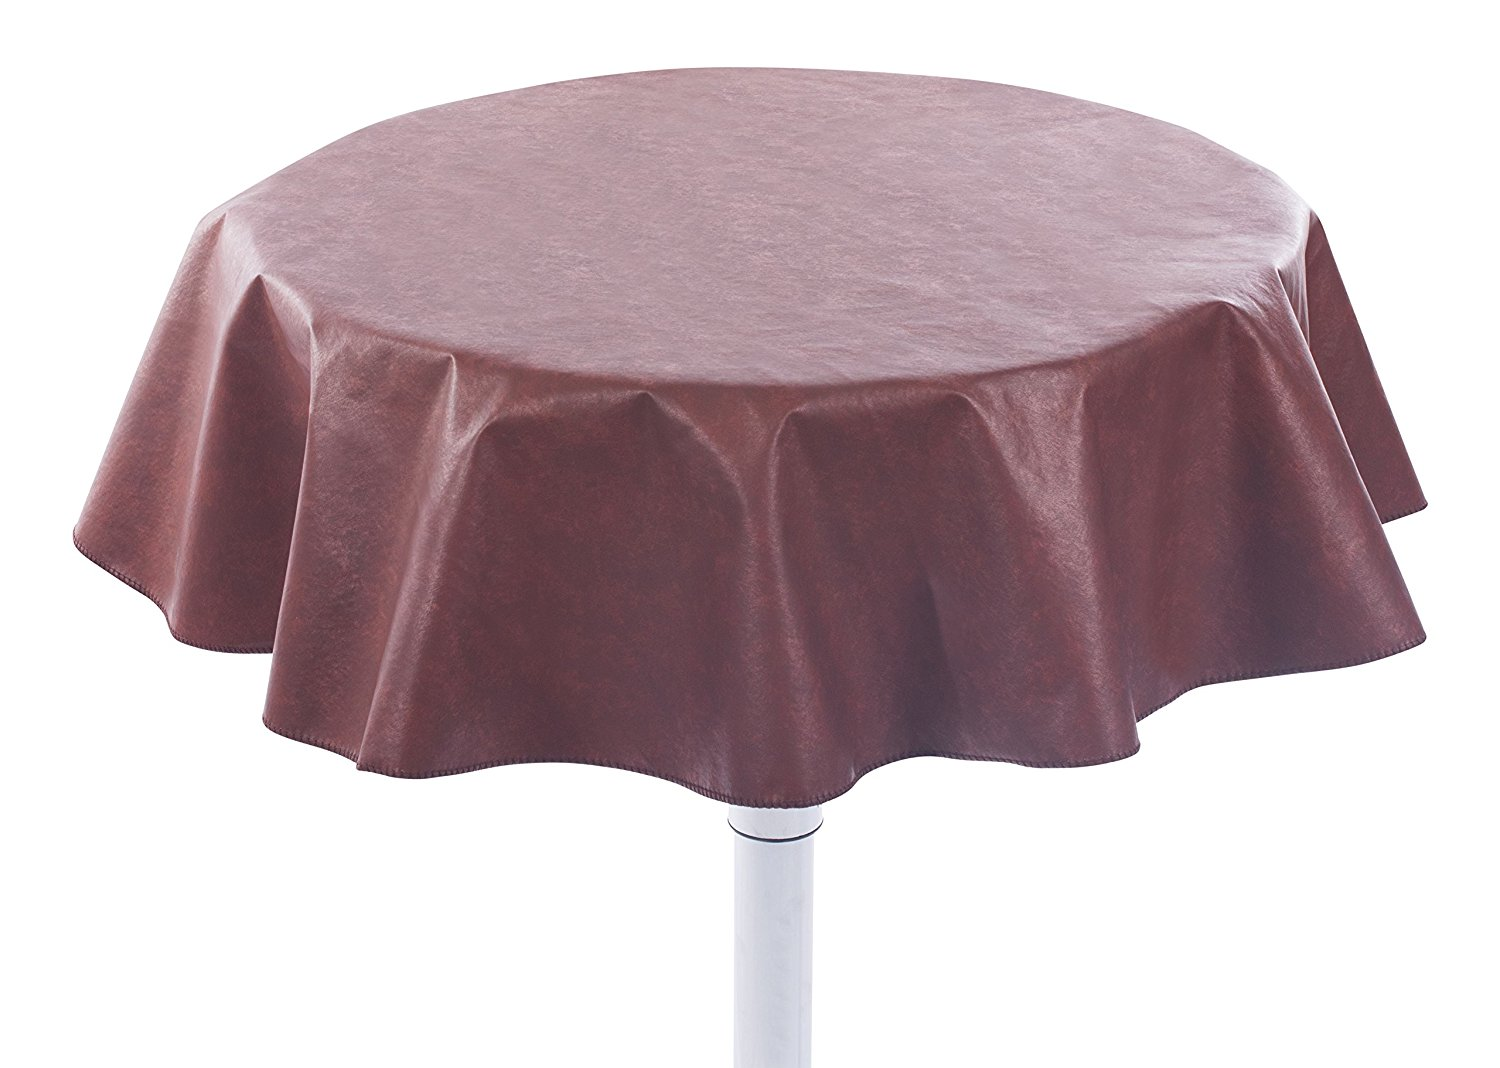 Heavy Duty Flannel Backed Round Vinyl Tablecloth U201aÄì 6 Gauge Thickness,  Indoor And Outdoor